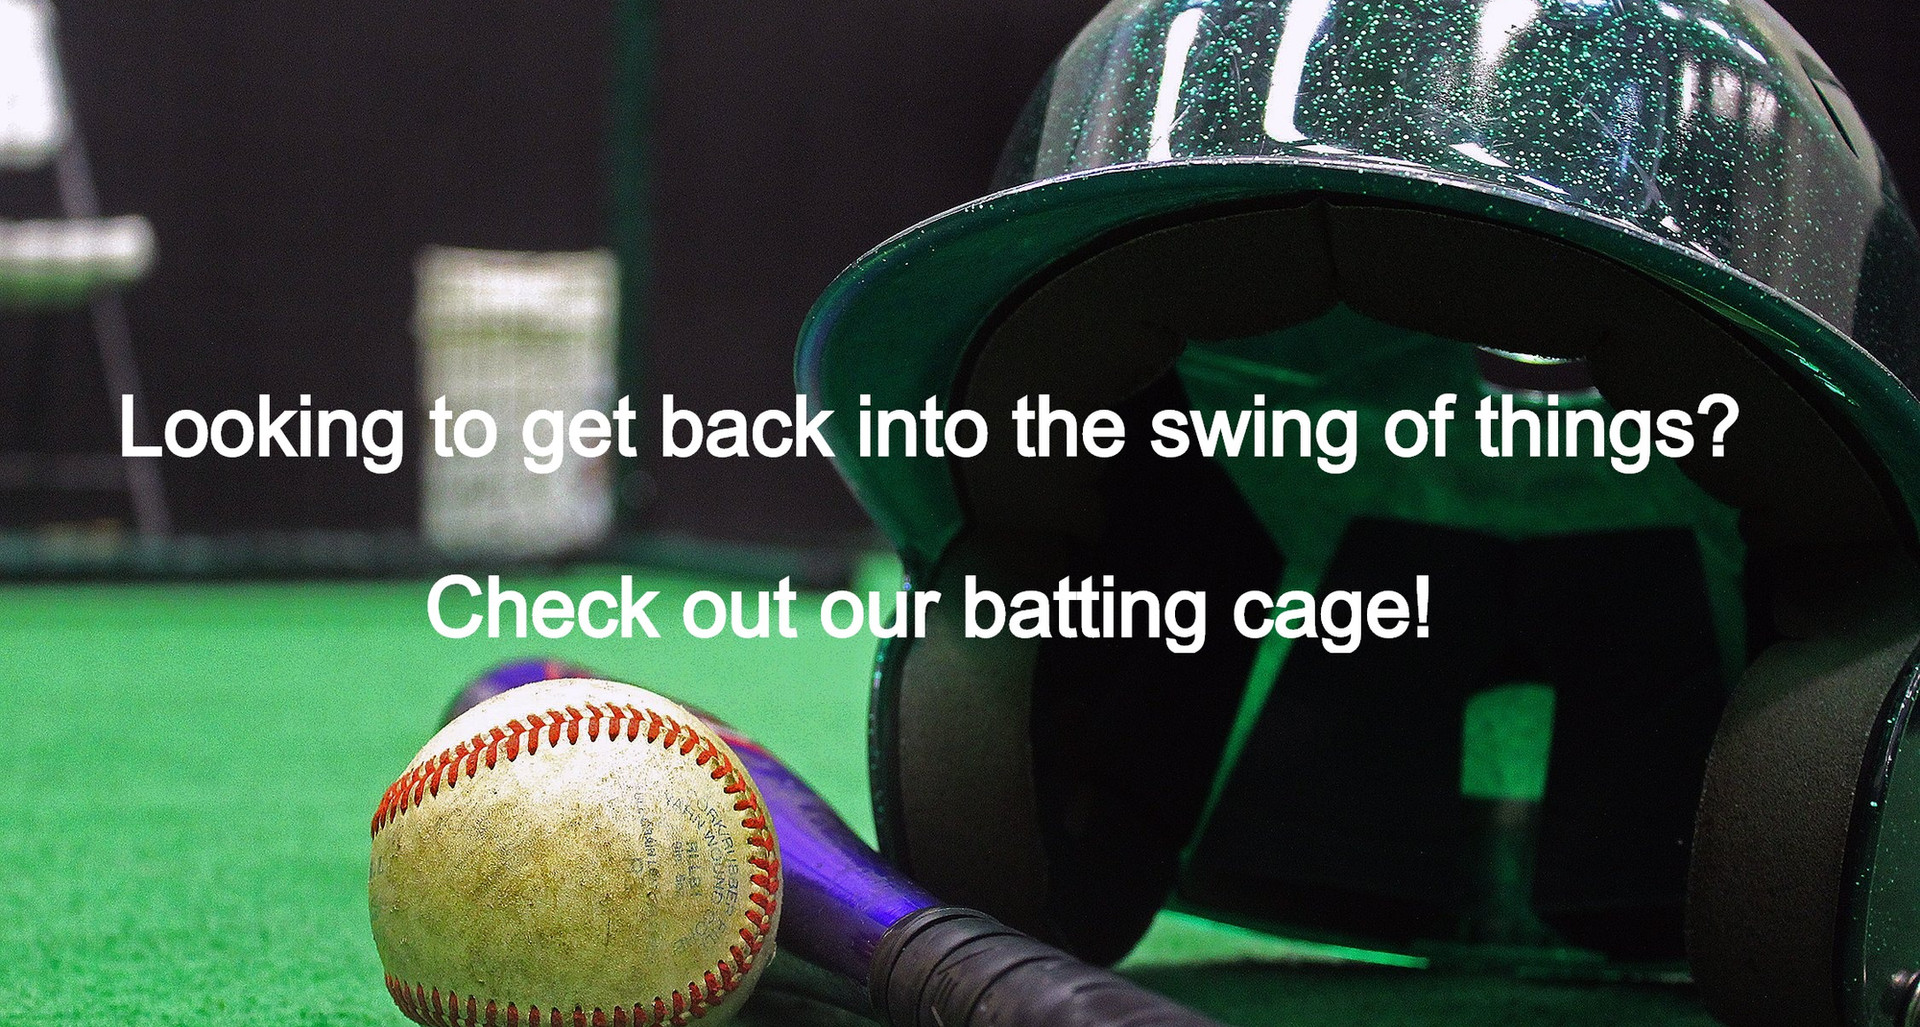 batting cage w/text